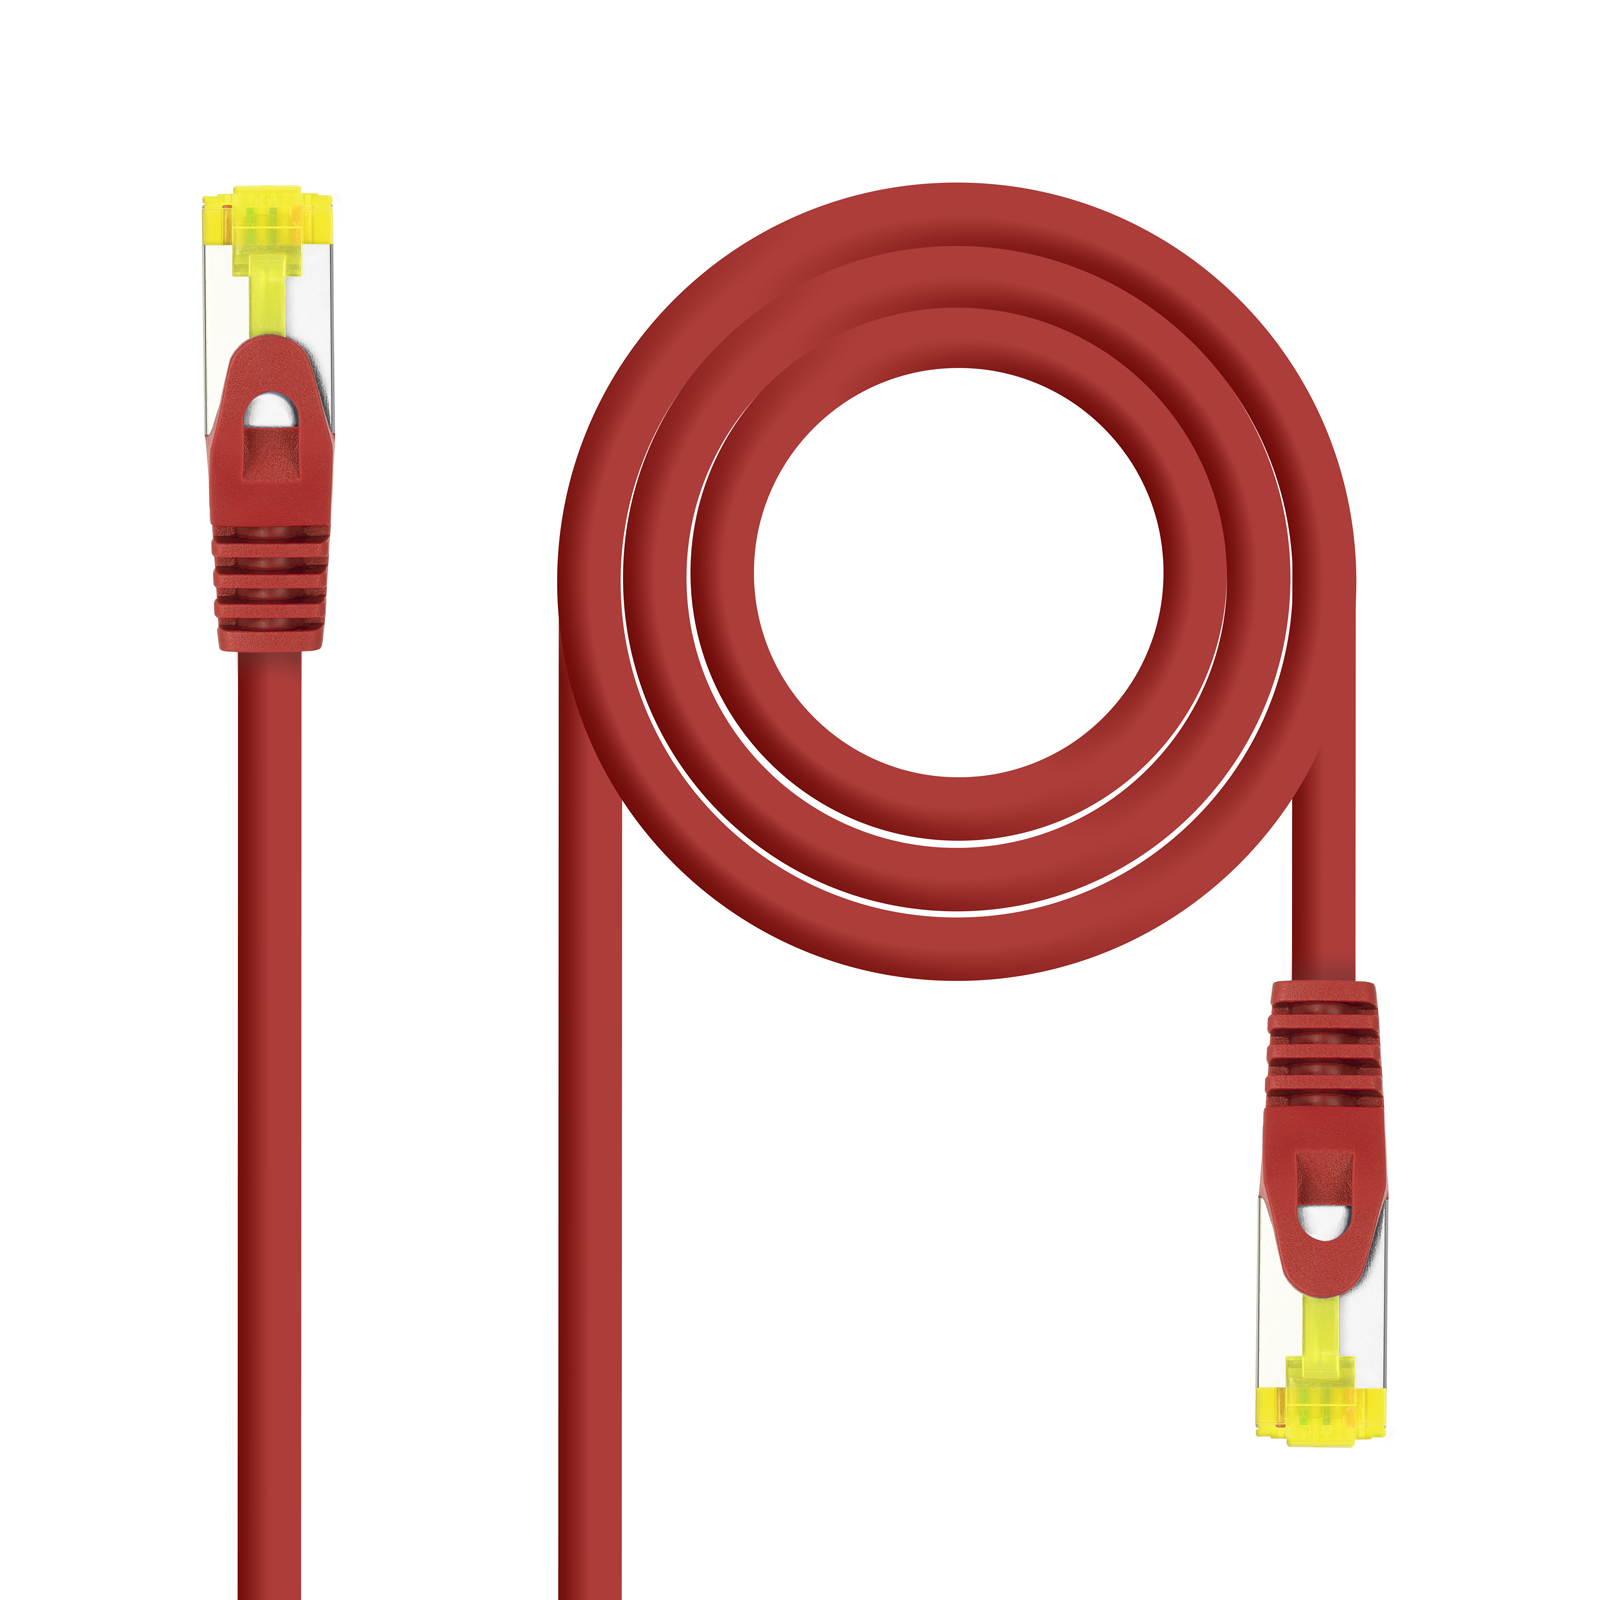 CABLE RED LATIGUILLO RJ45 LSZH CAT.6A SFTP AWG26 ROJO 0.5 M